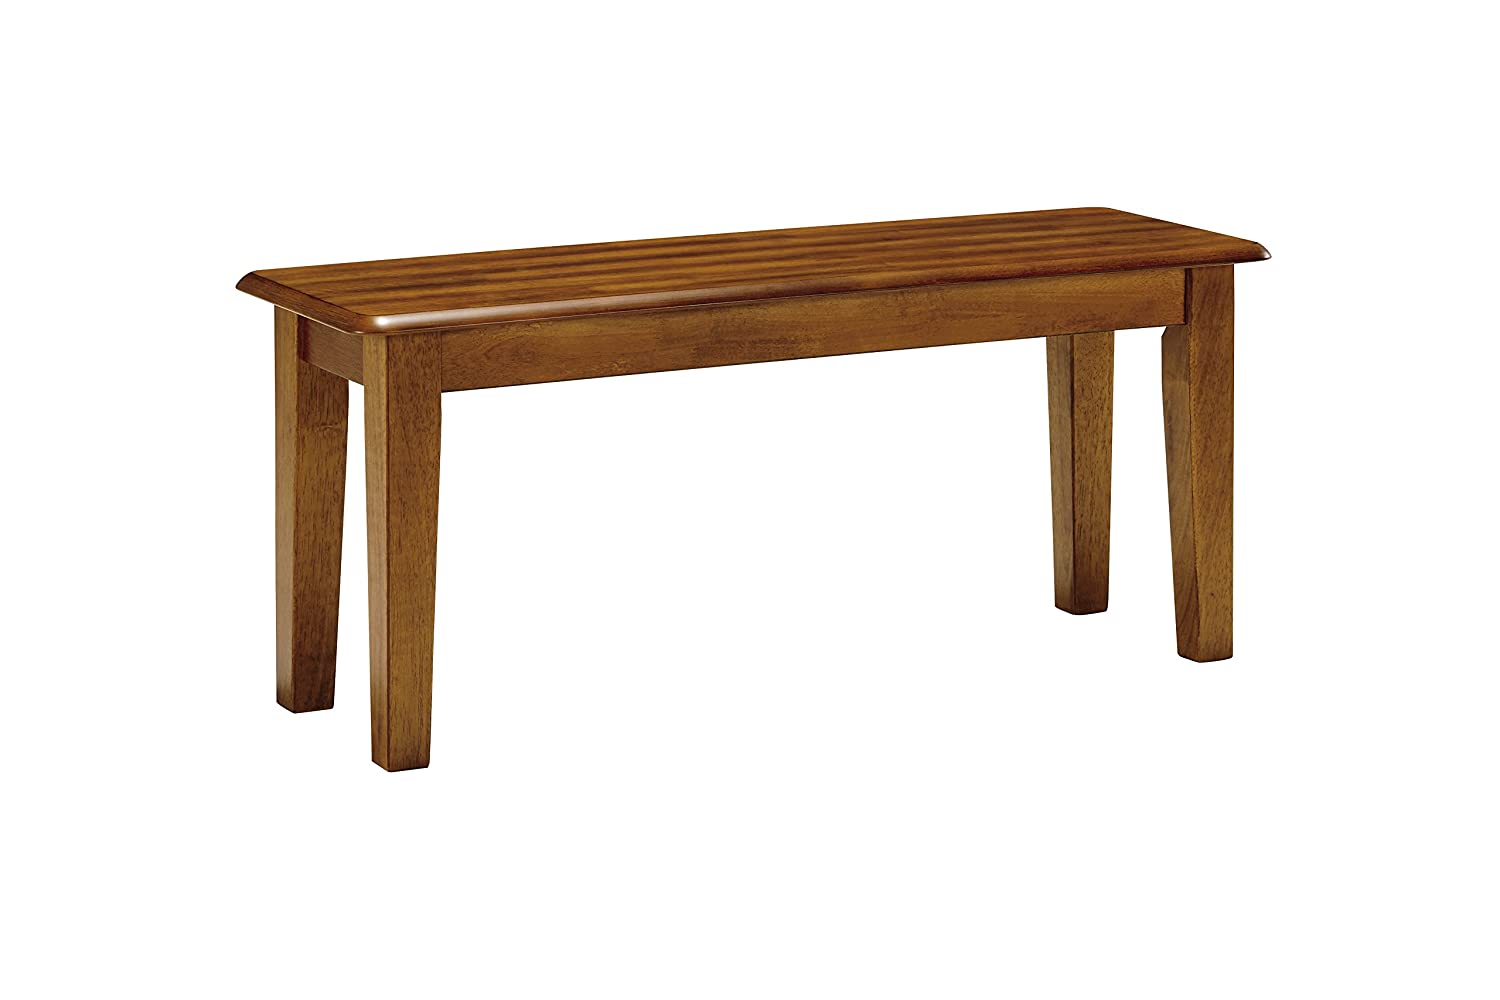 Amazon Com Natural Wood Dining Table Home Kitchen - Amazon com ashley furniture signature design dining bench rectangular vintage casual rustic brown finish table benches